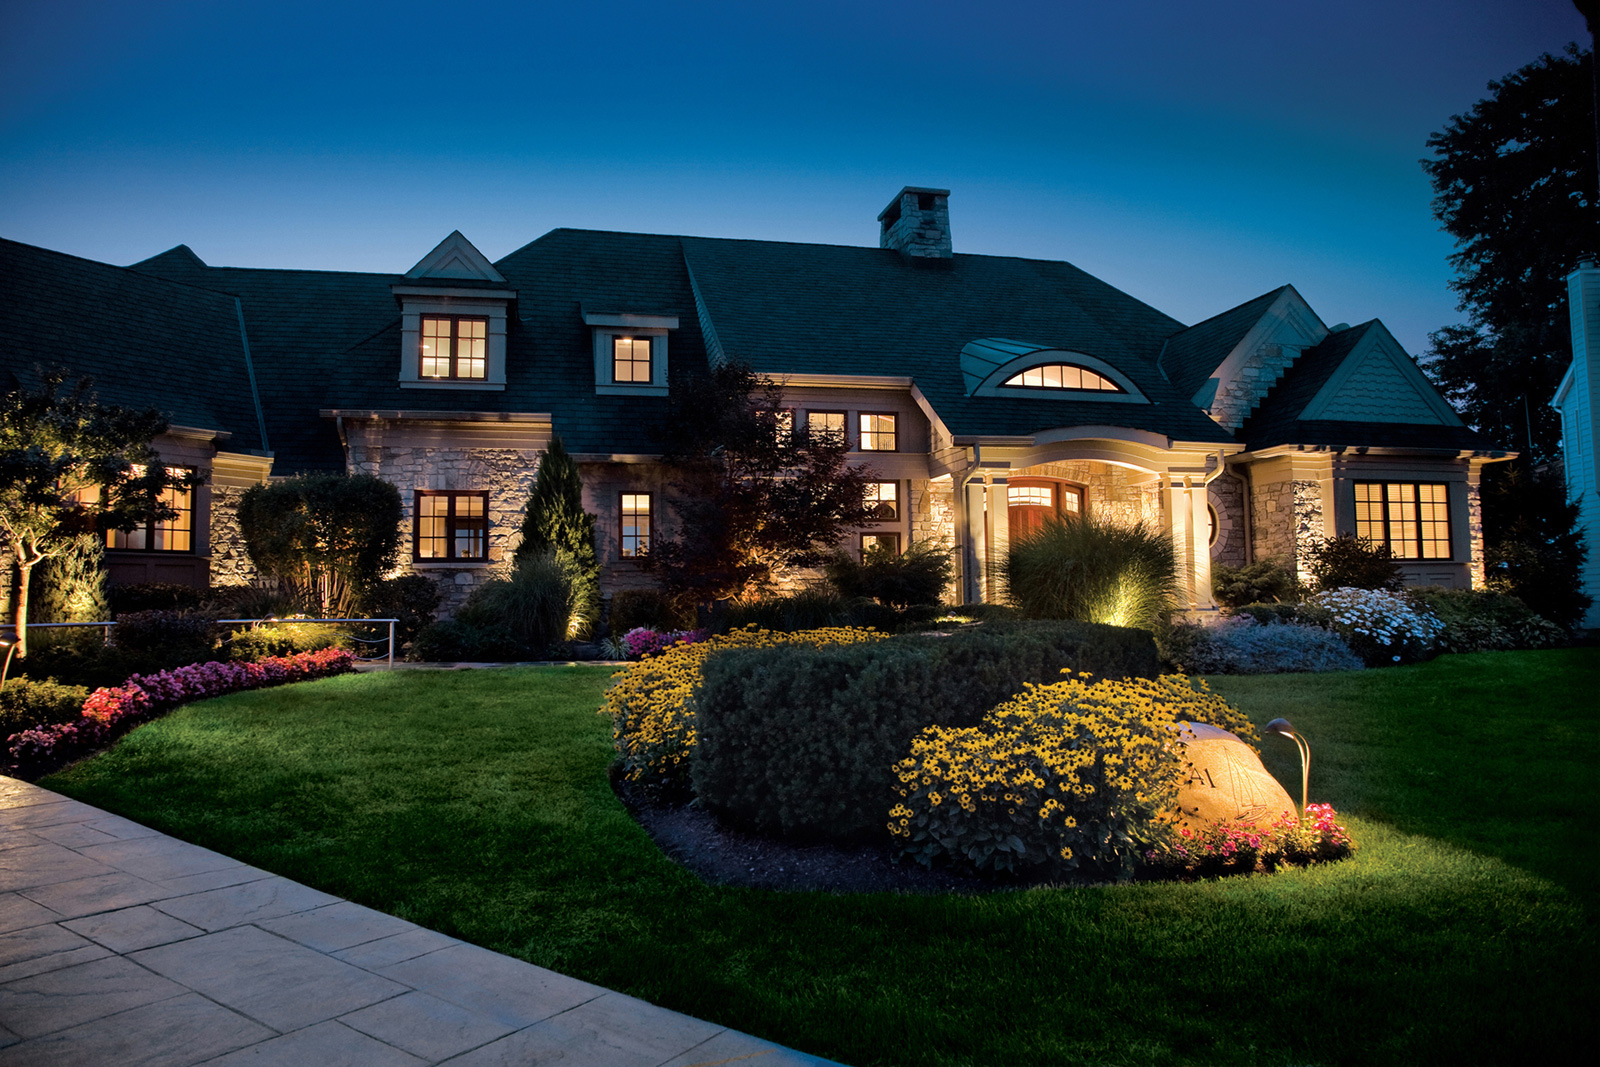 Use Landscape Lighting to Brighten up Your Property